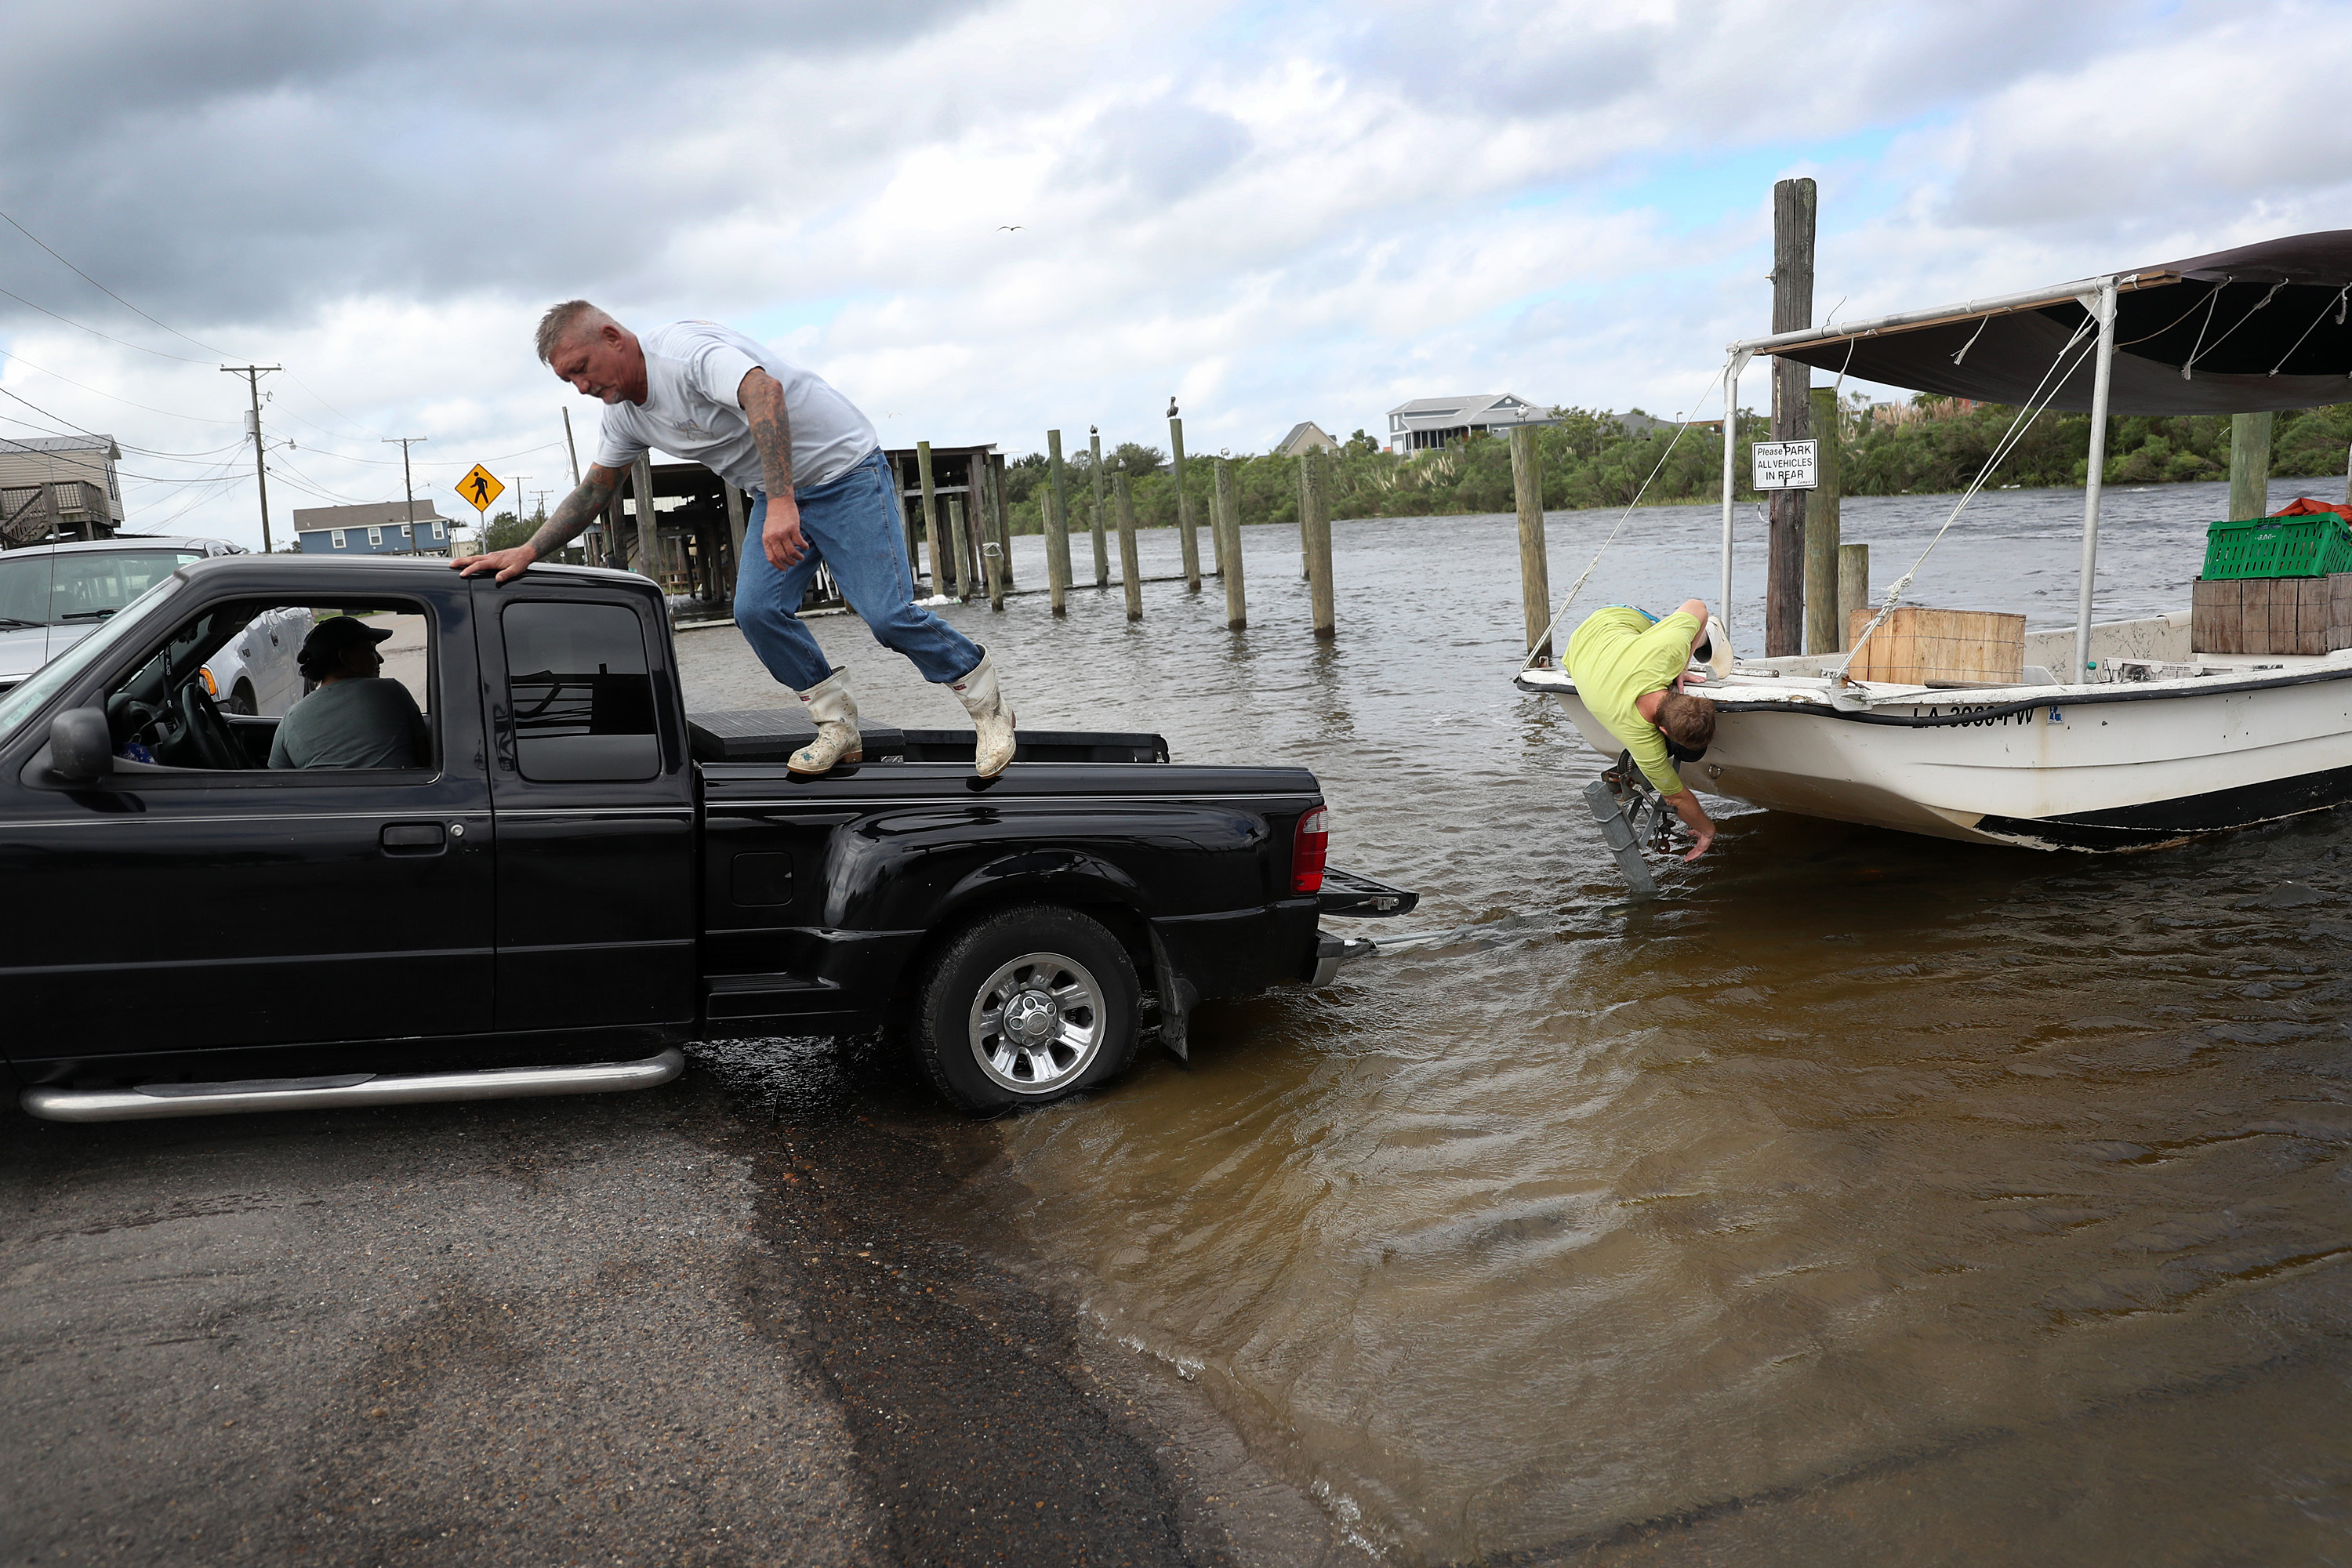 People take a boat out of the water on September 14 in Shell Beach, Louisiana, before the possible arrival of Hurricane Sally.